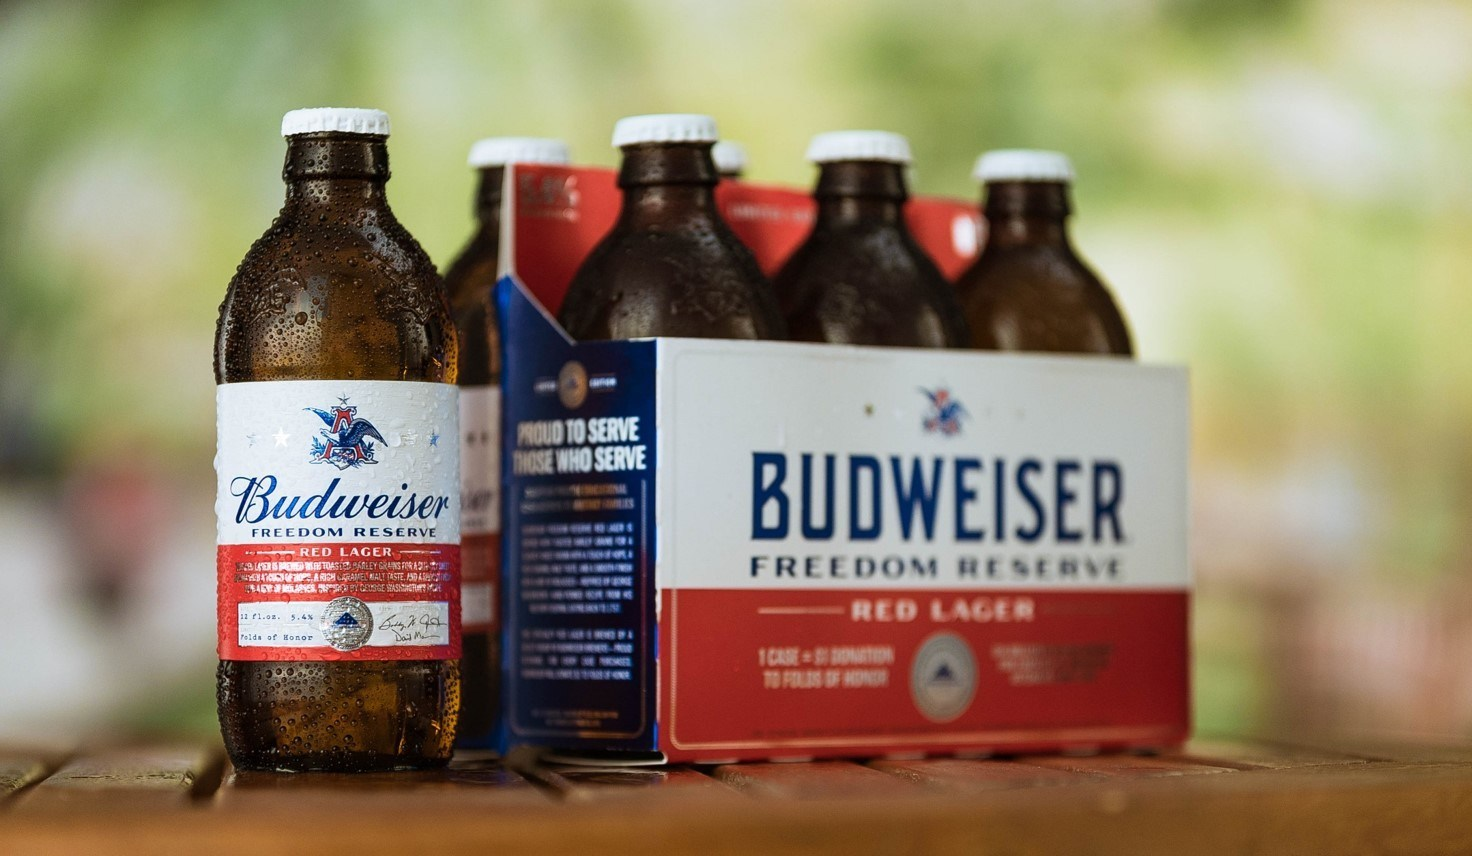 Freedom Bed Head Anheuser Busch Releases Budweiser Freedom Reserve Red Lager